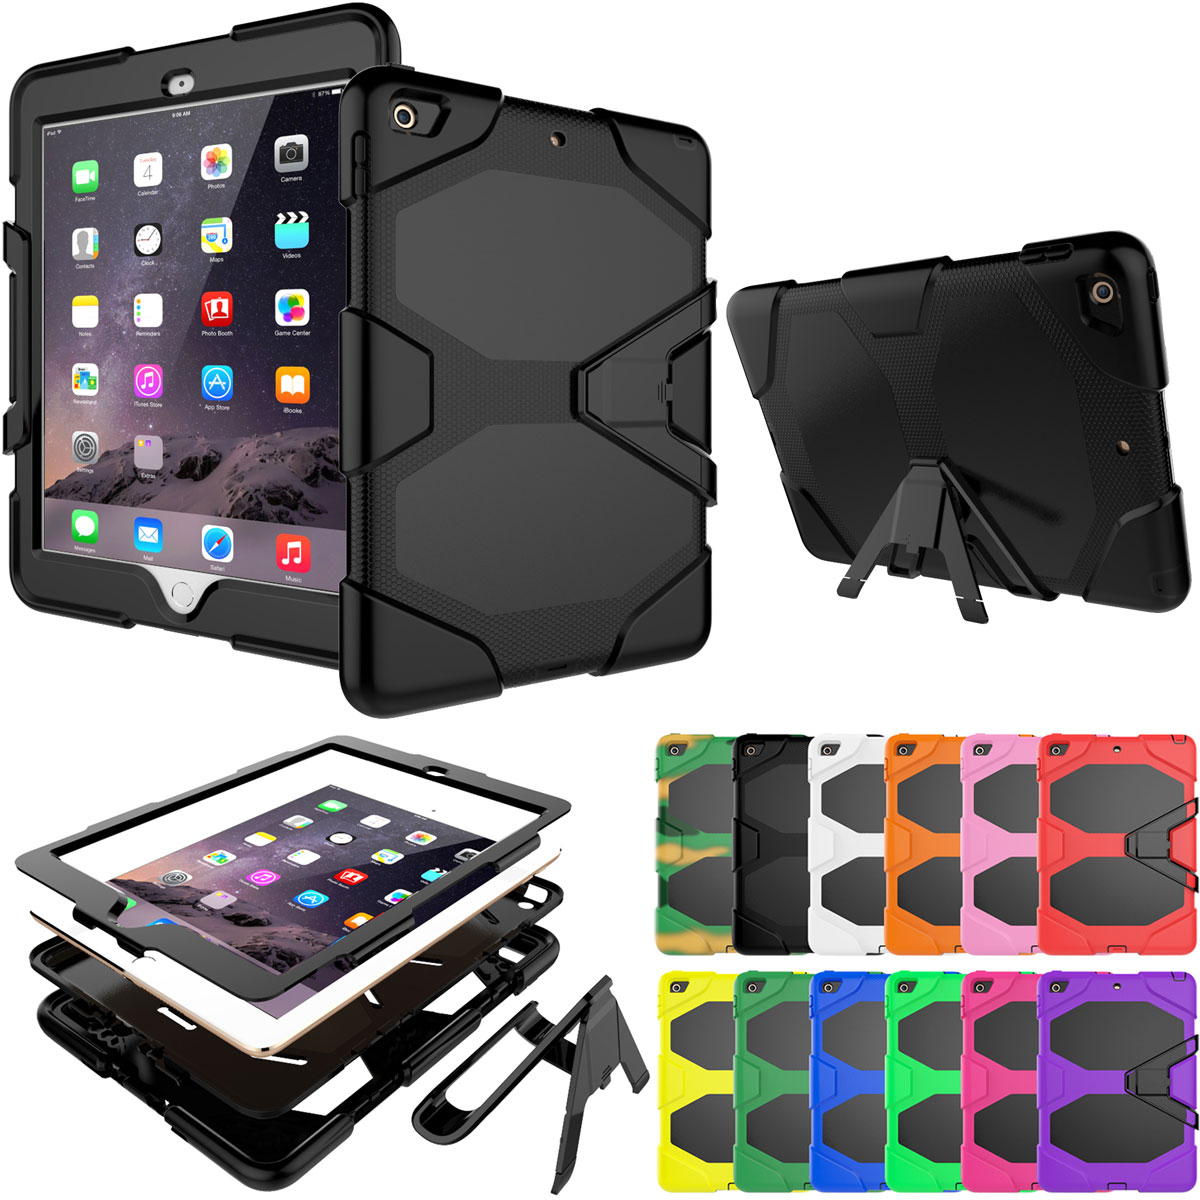 new style 884d9 9c026 Details about Hybrid Rubber Shockproof Stand Protective Case For Apple iPad  9.7 2018 6th Gen